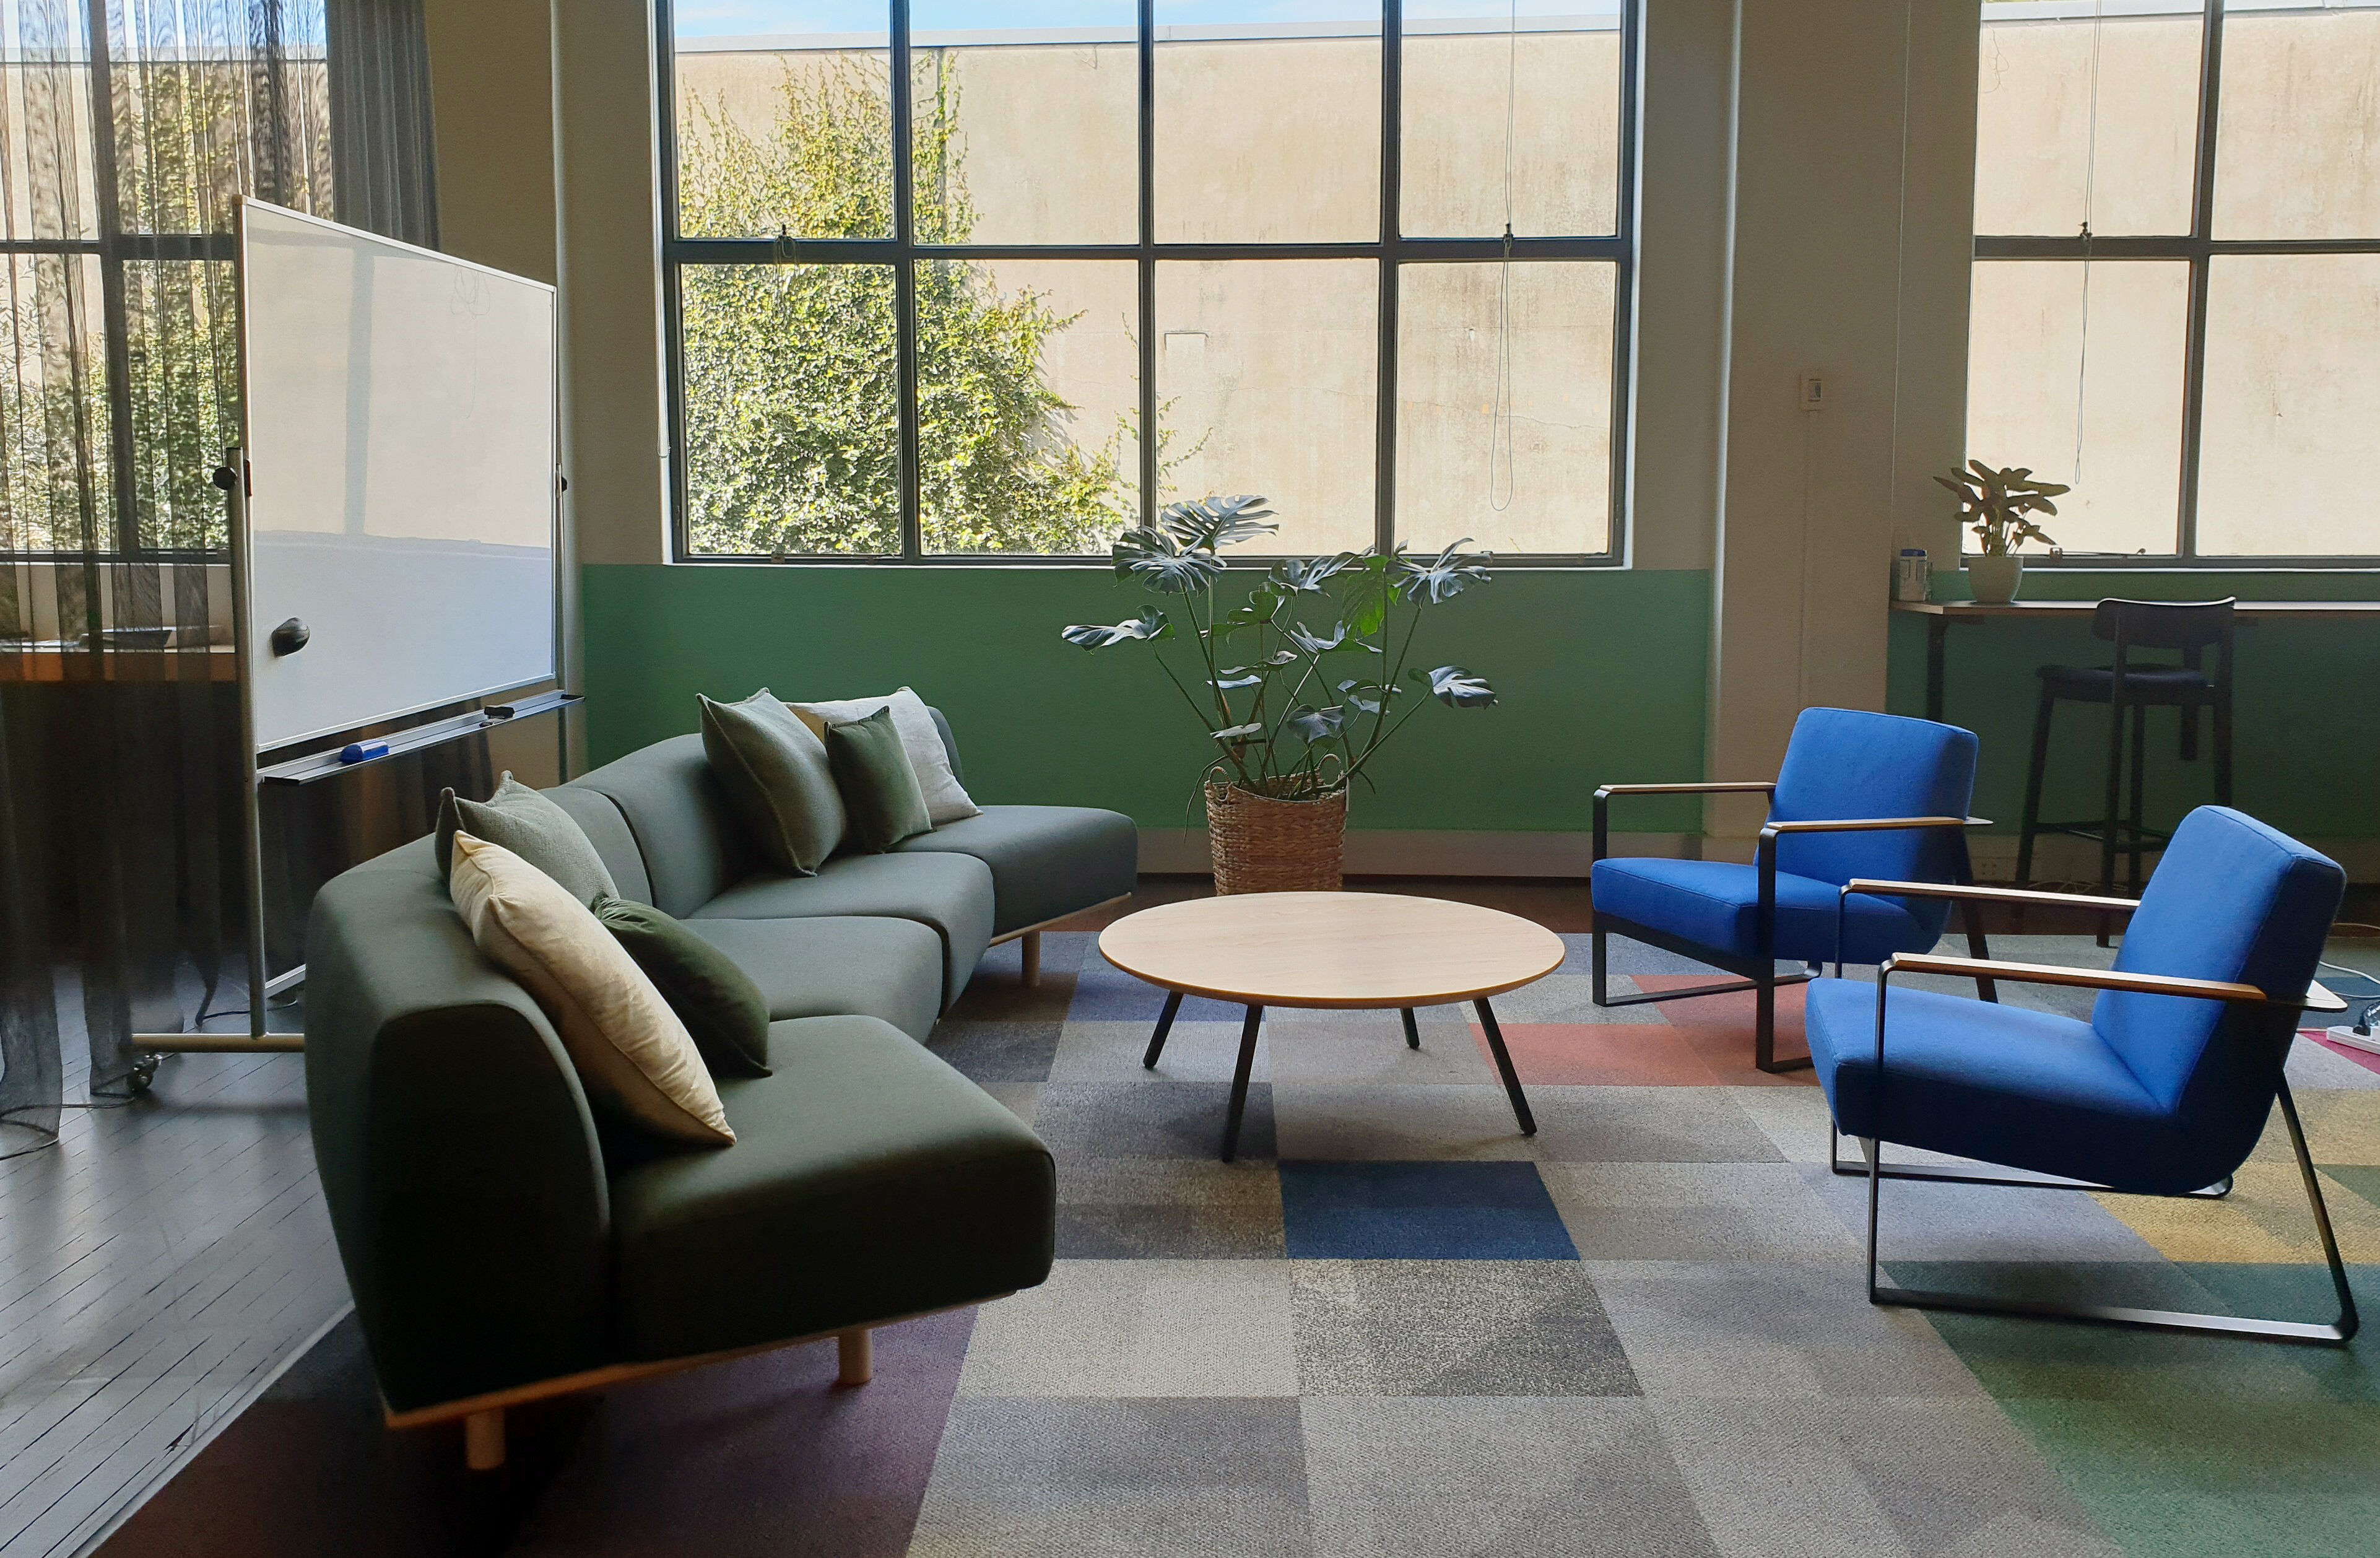 An eclectic collection of furniture styles and colours creates a creative oasis at Context Architects